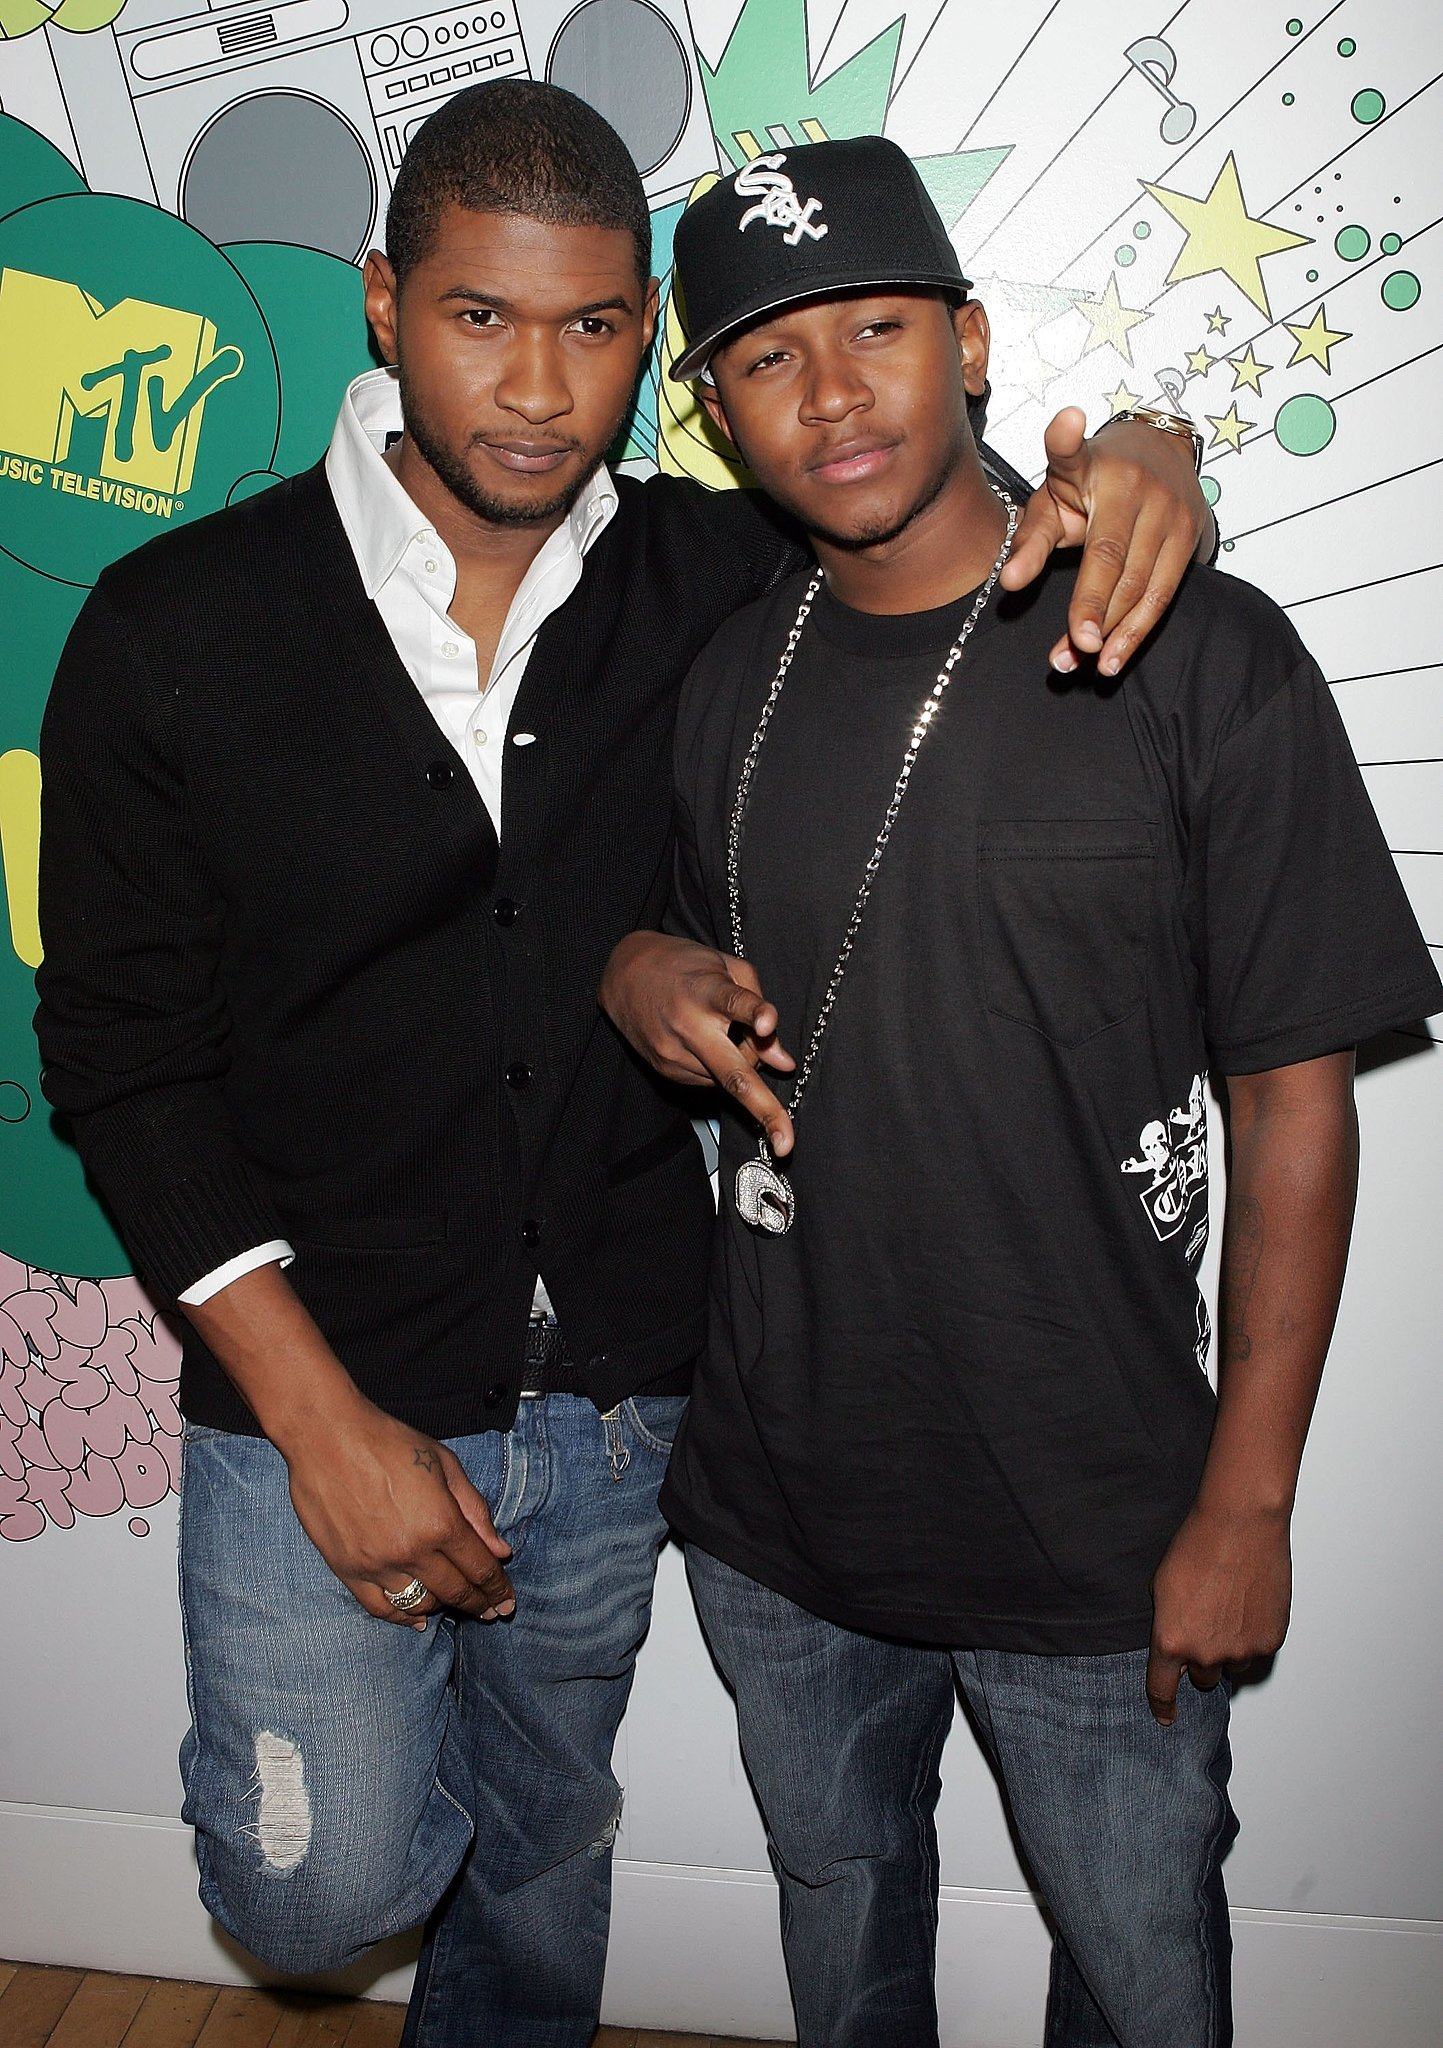 Photo of Usher Raymond & his friend celebrity  James Lackey - brother